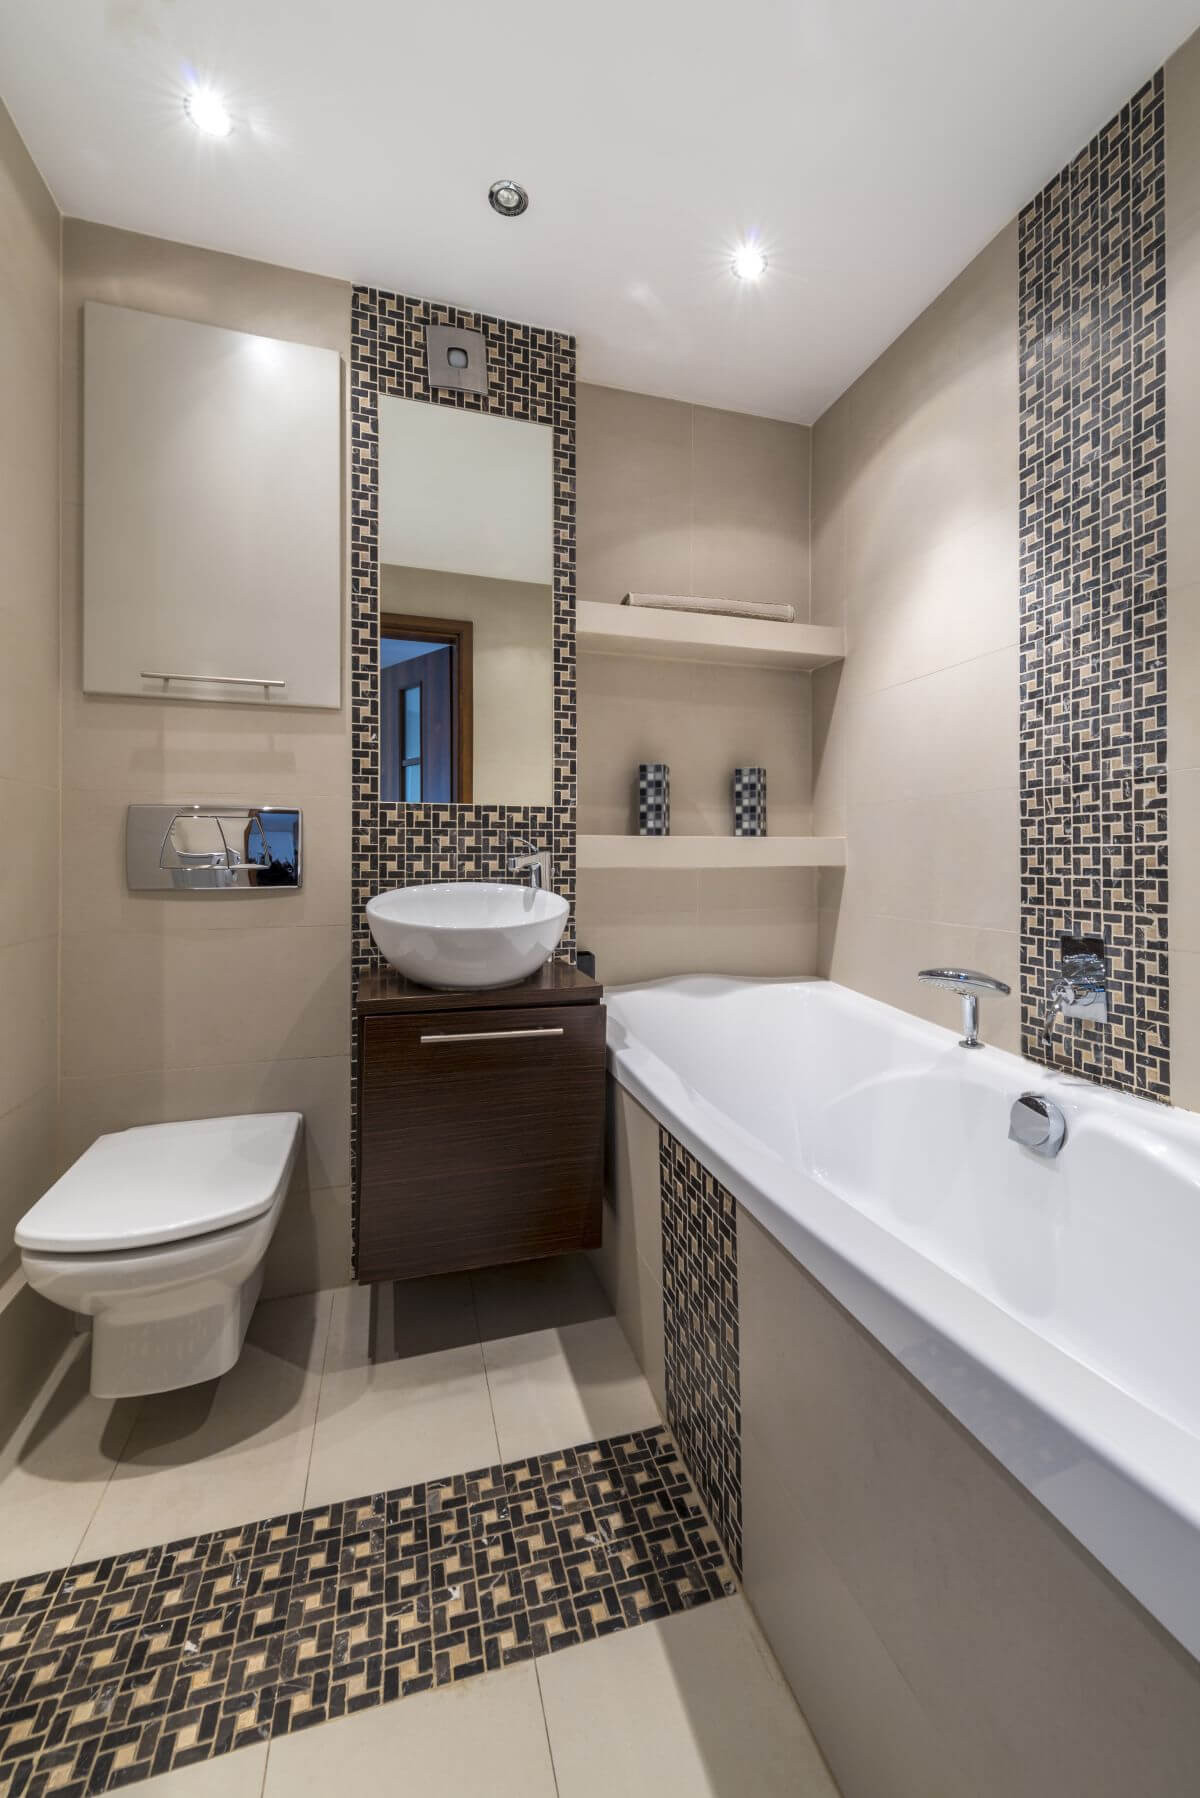 Compact Bathroom Design Awesome 32 Best Small Bathroom Design Ideas and Decorations for 2020